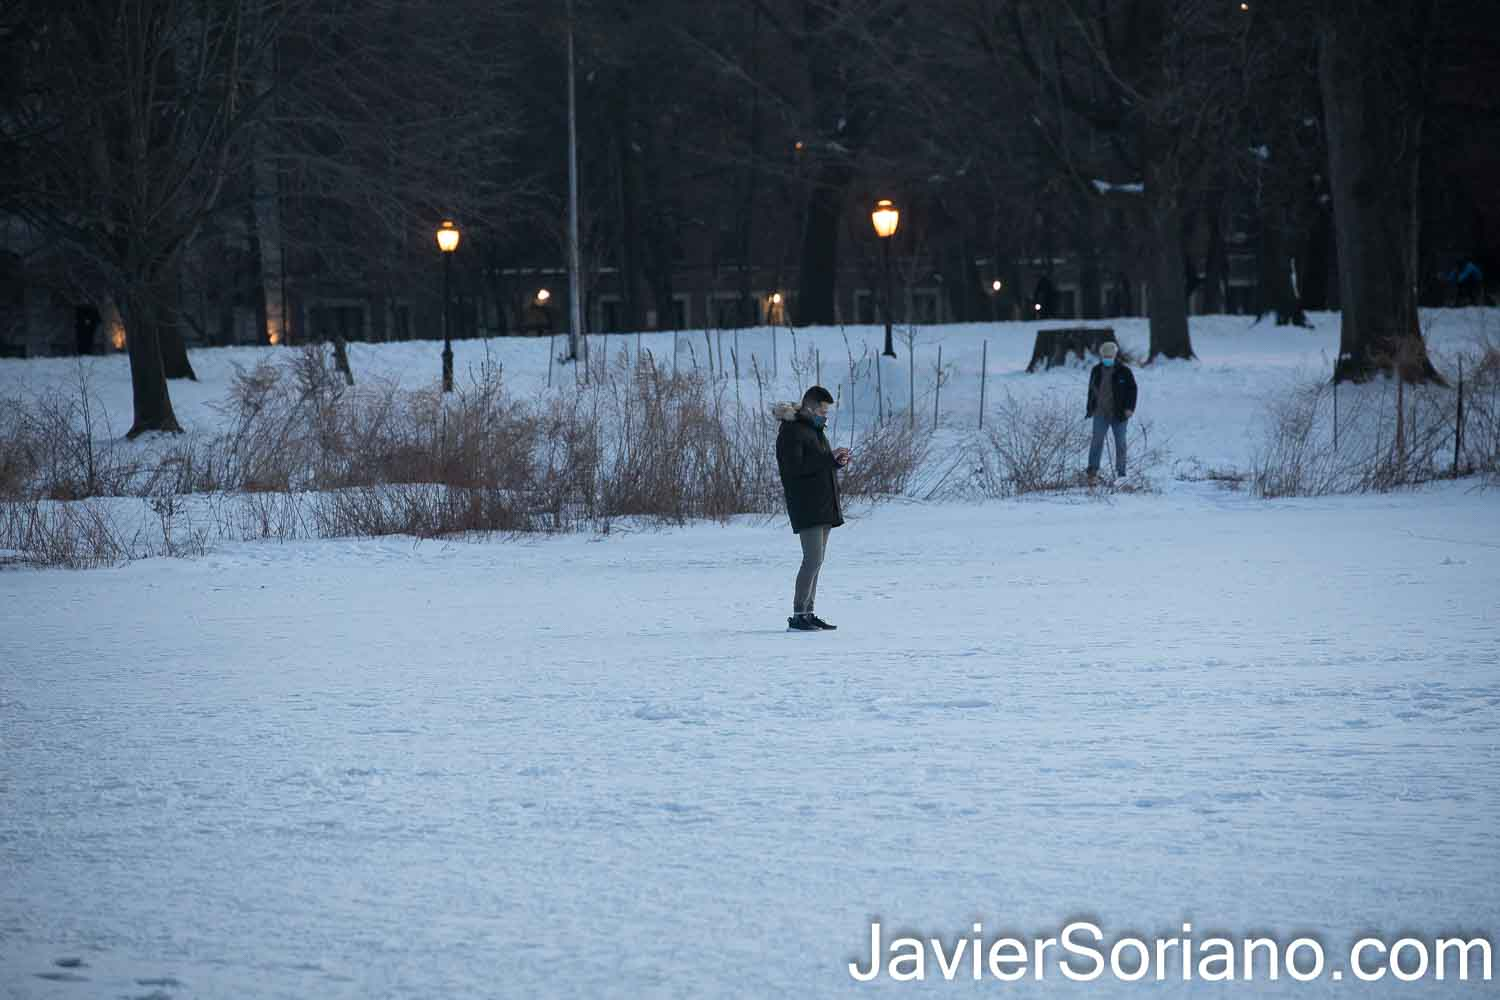 Sunday, February 21, 2021. Brooklyn, New York City – Man walking on a frozen lake in Prospect Park. Photo by Javier Soriano/www.JavierSoriano.com